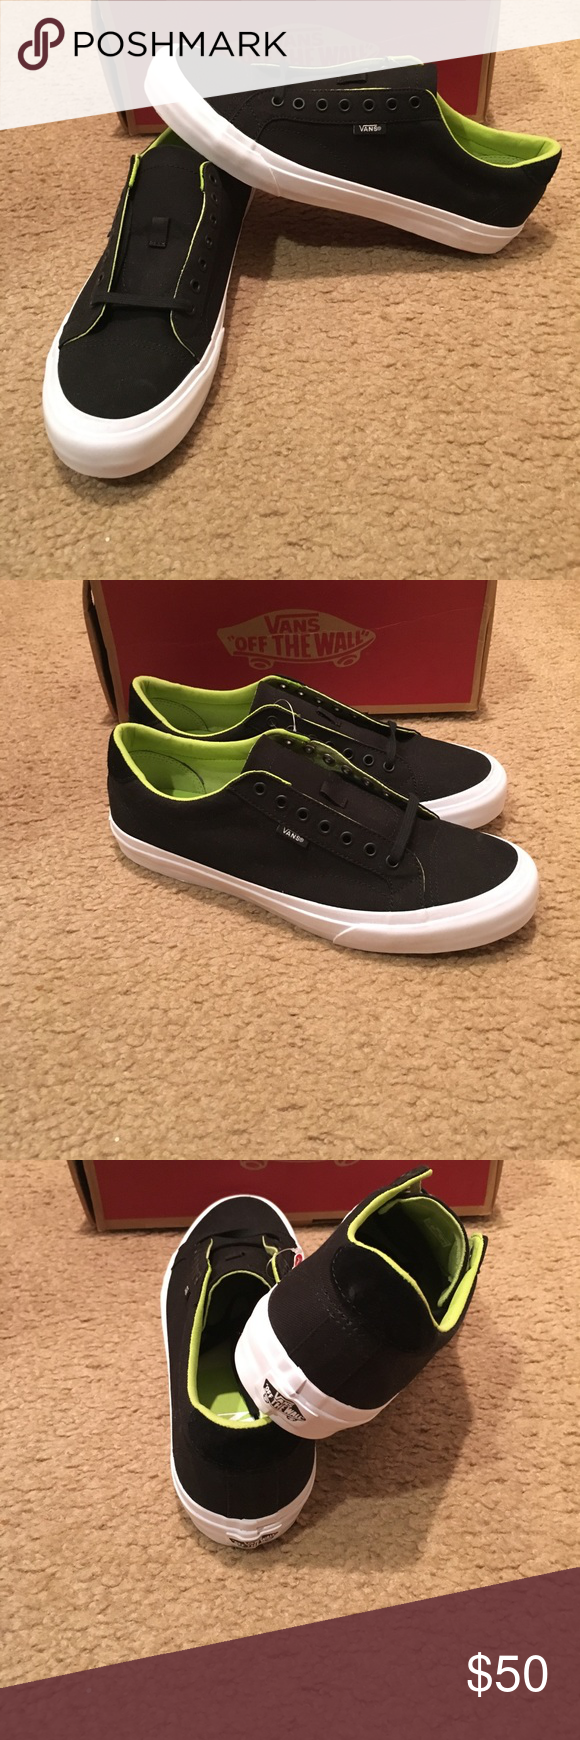 4a65b9556b28 Court Canvas Vans New in box. Black green glow Vans Shoes Sneakers